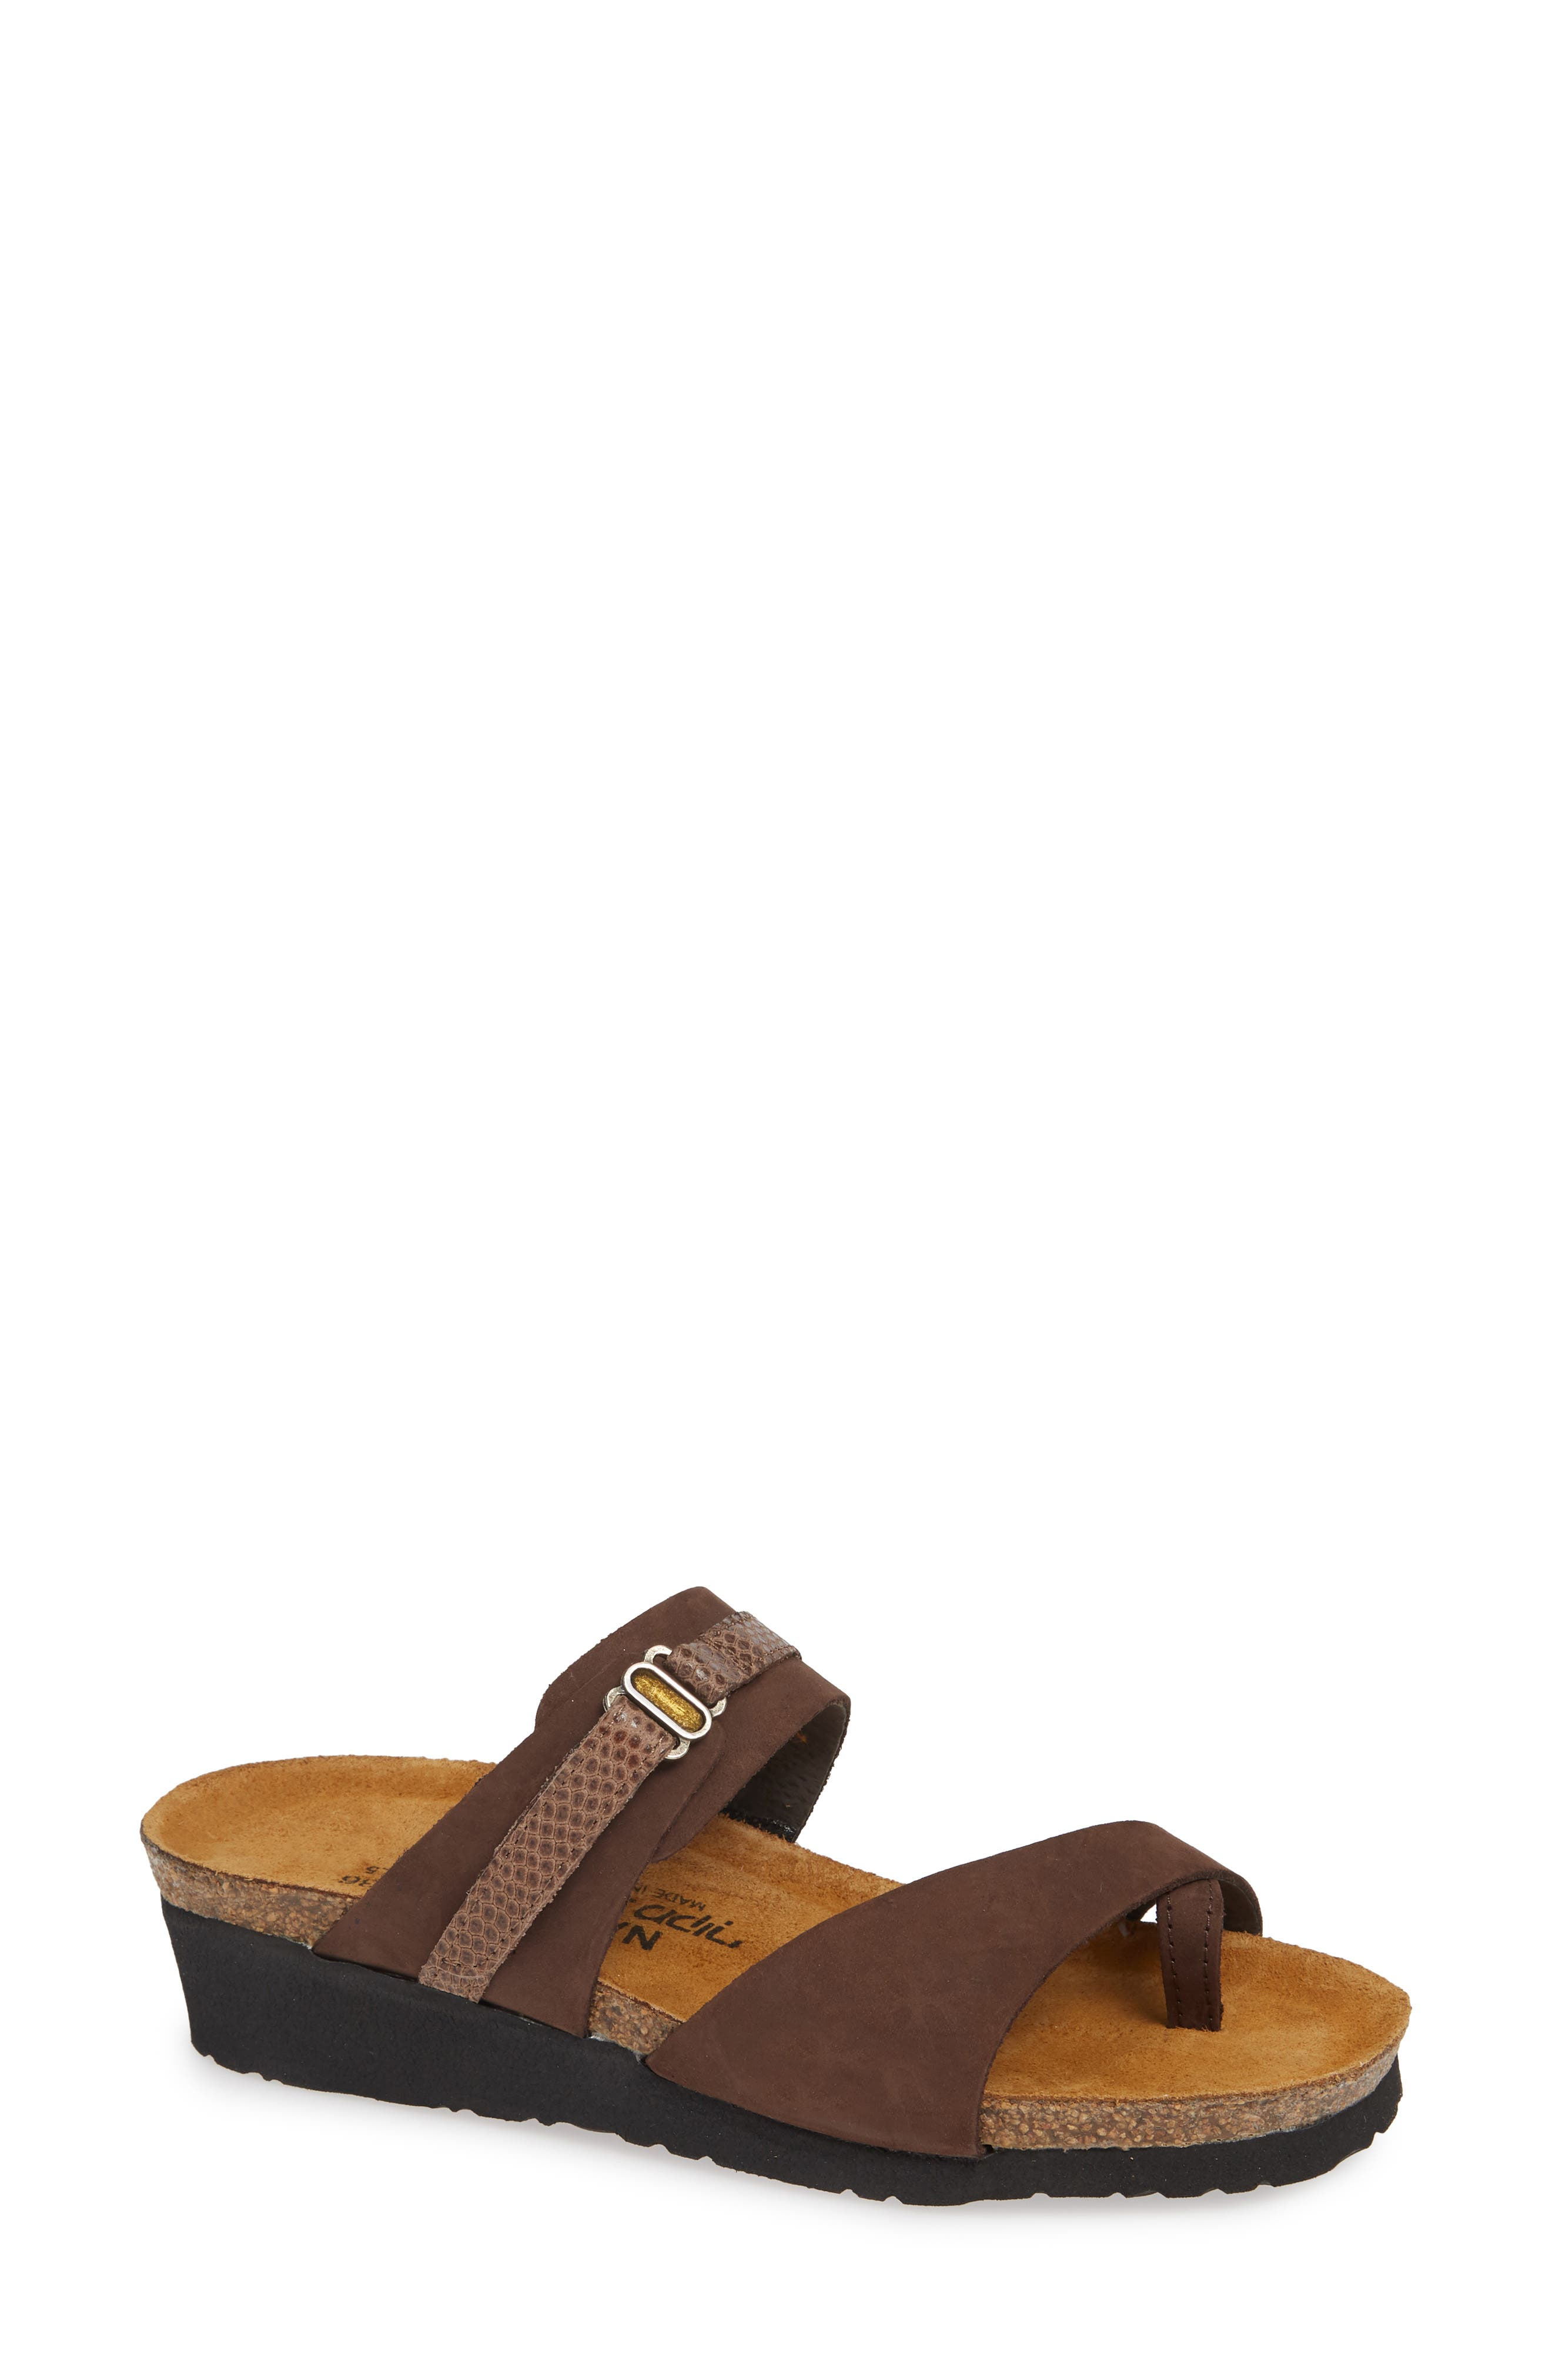 Smooth leather straps refine a go-to casual sandal set on a signature contoured footbed. Style Name: Naot Jessica Sandal (Women). Style Number: 5361025. Available in stores.